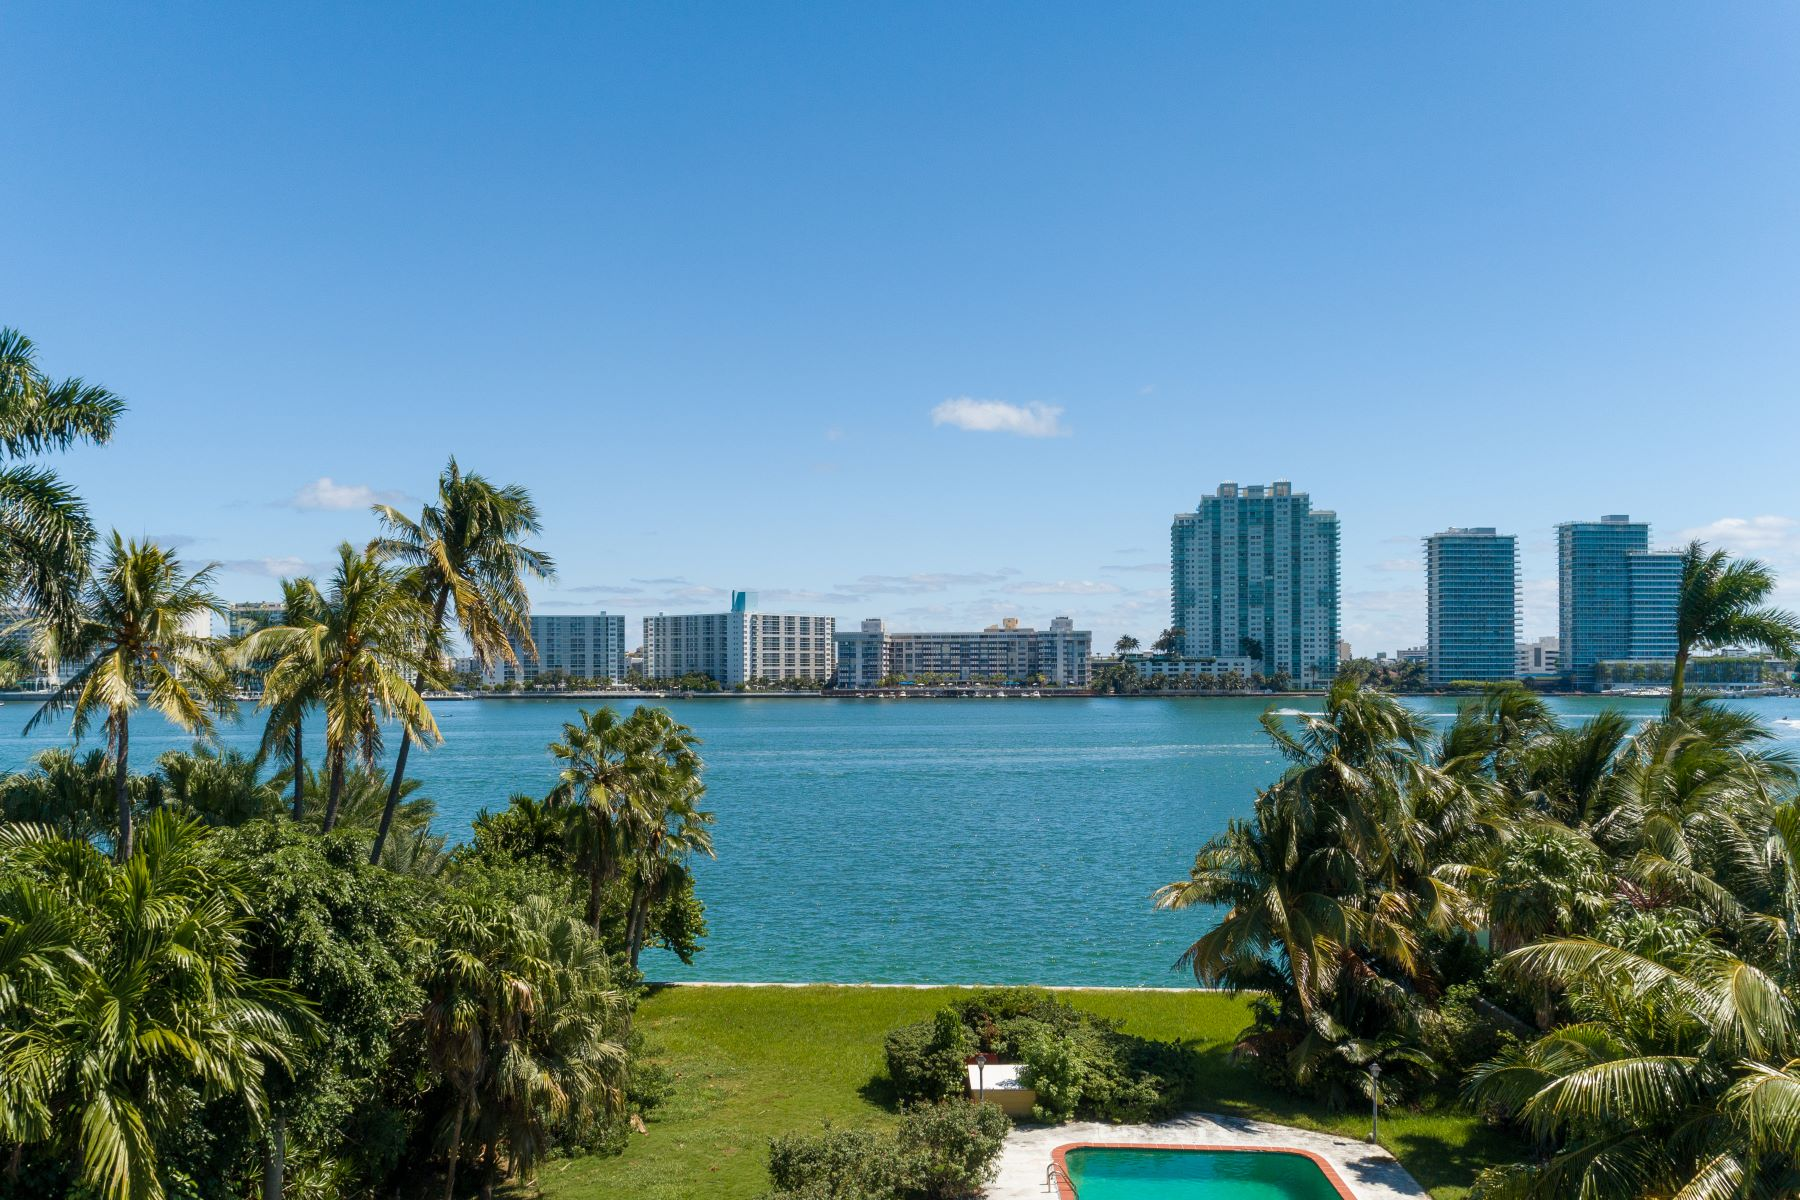 Land for Sale at 34 Star Island Dr Miami Beach, Florida 33139 United States